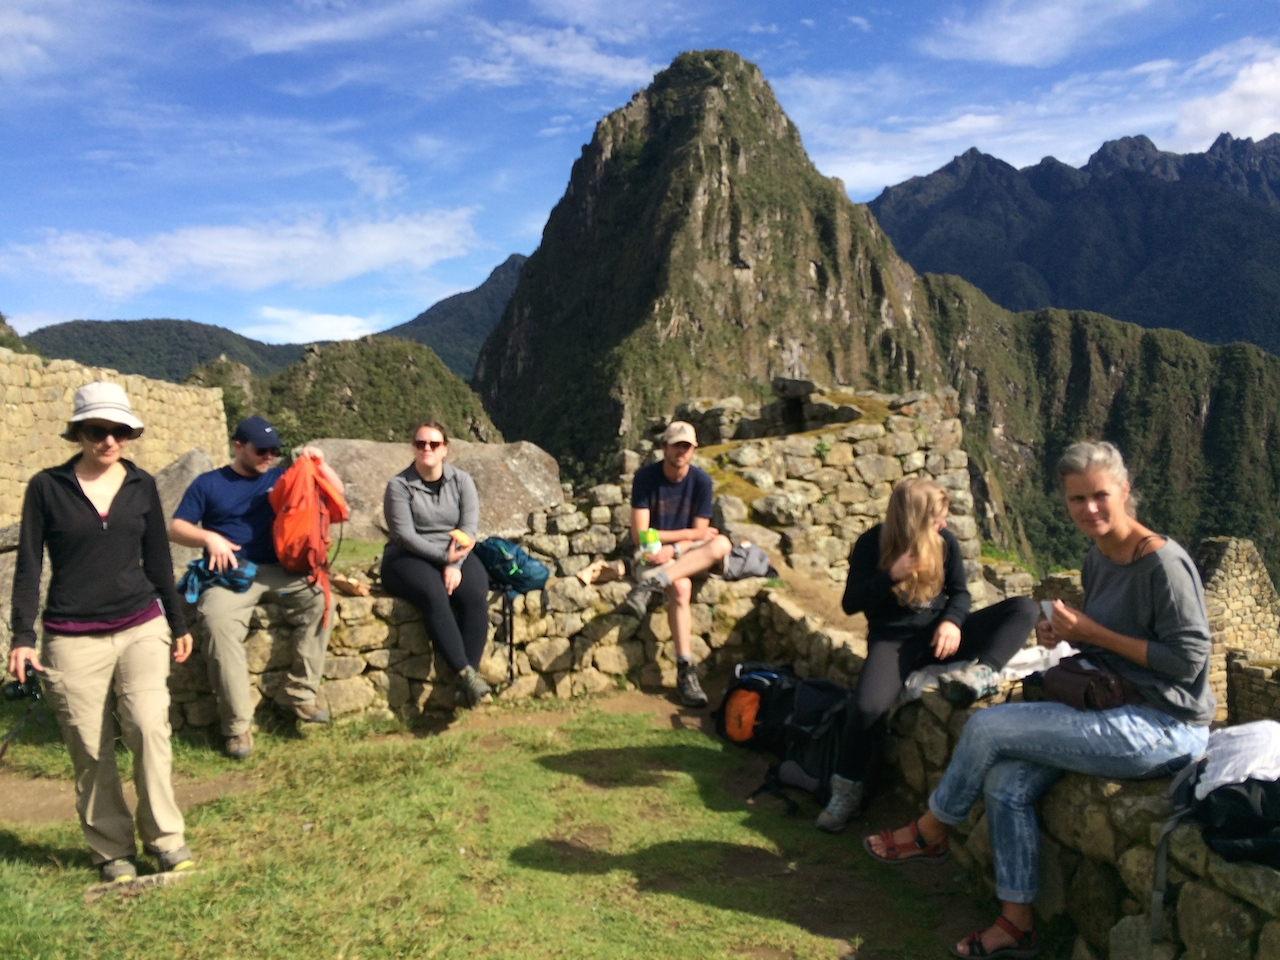 There's really no such thing as a bad lunch spot at Machu Picchu.